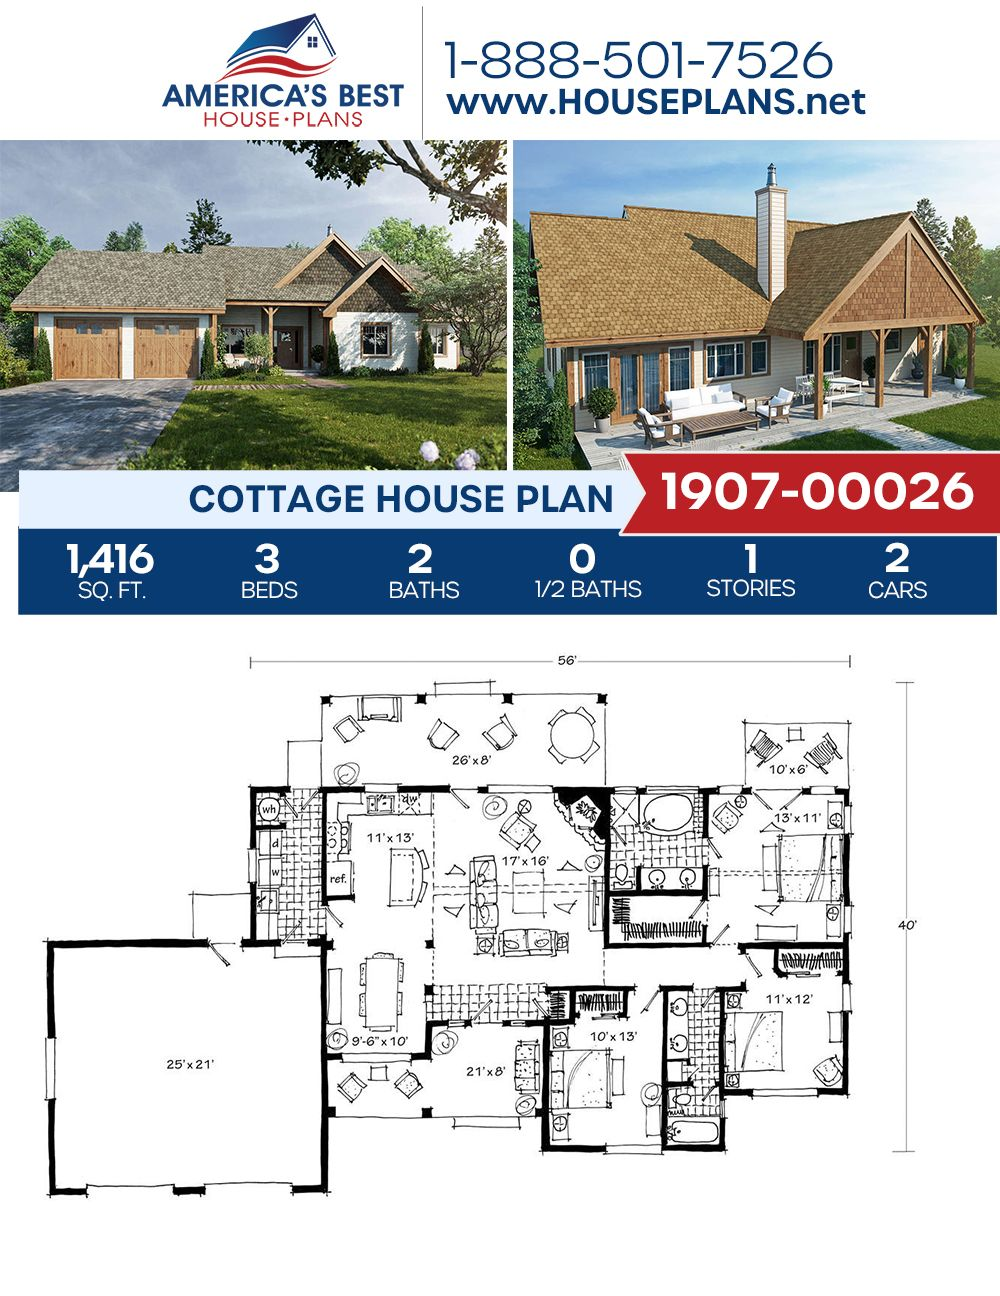 House Plan 1907 00026 Cottage Plan 1 416 Square Feet 3 Bedrooms 2 Bathrooms In 2020 Cottage House Plans Cottage Plan Dream House Plans